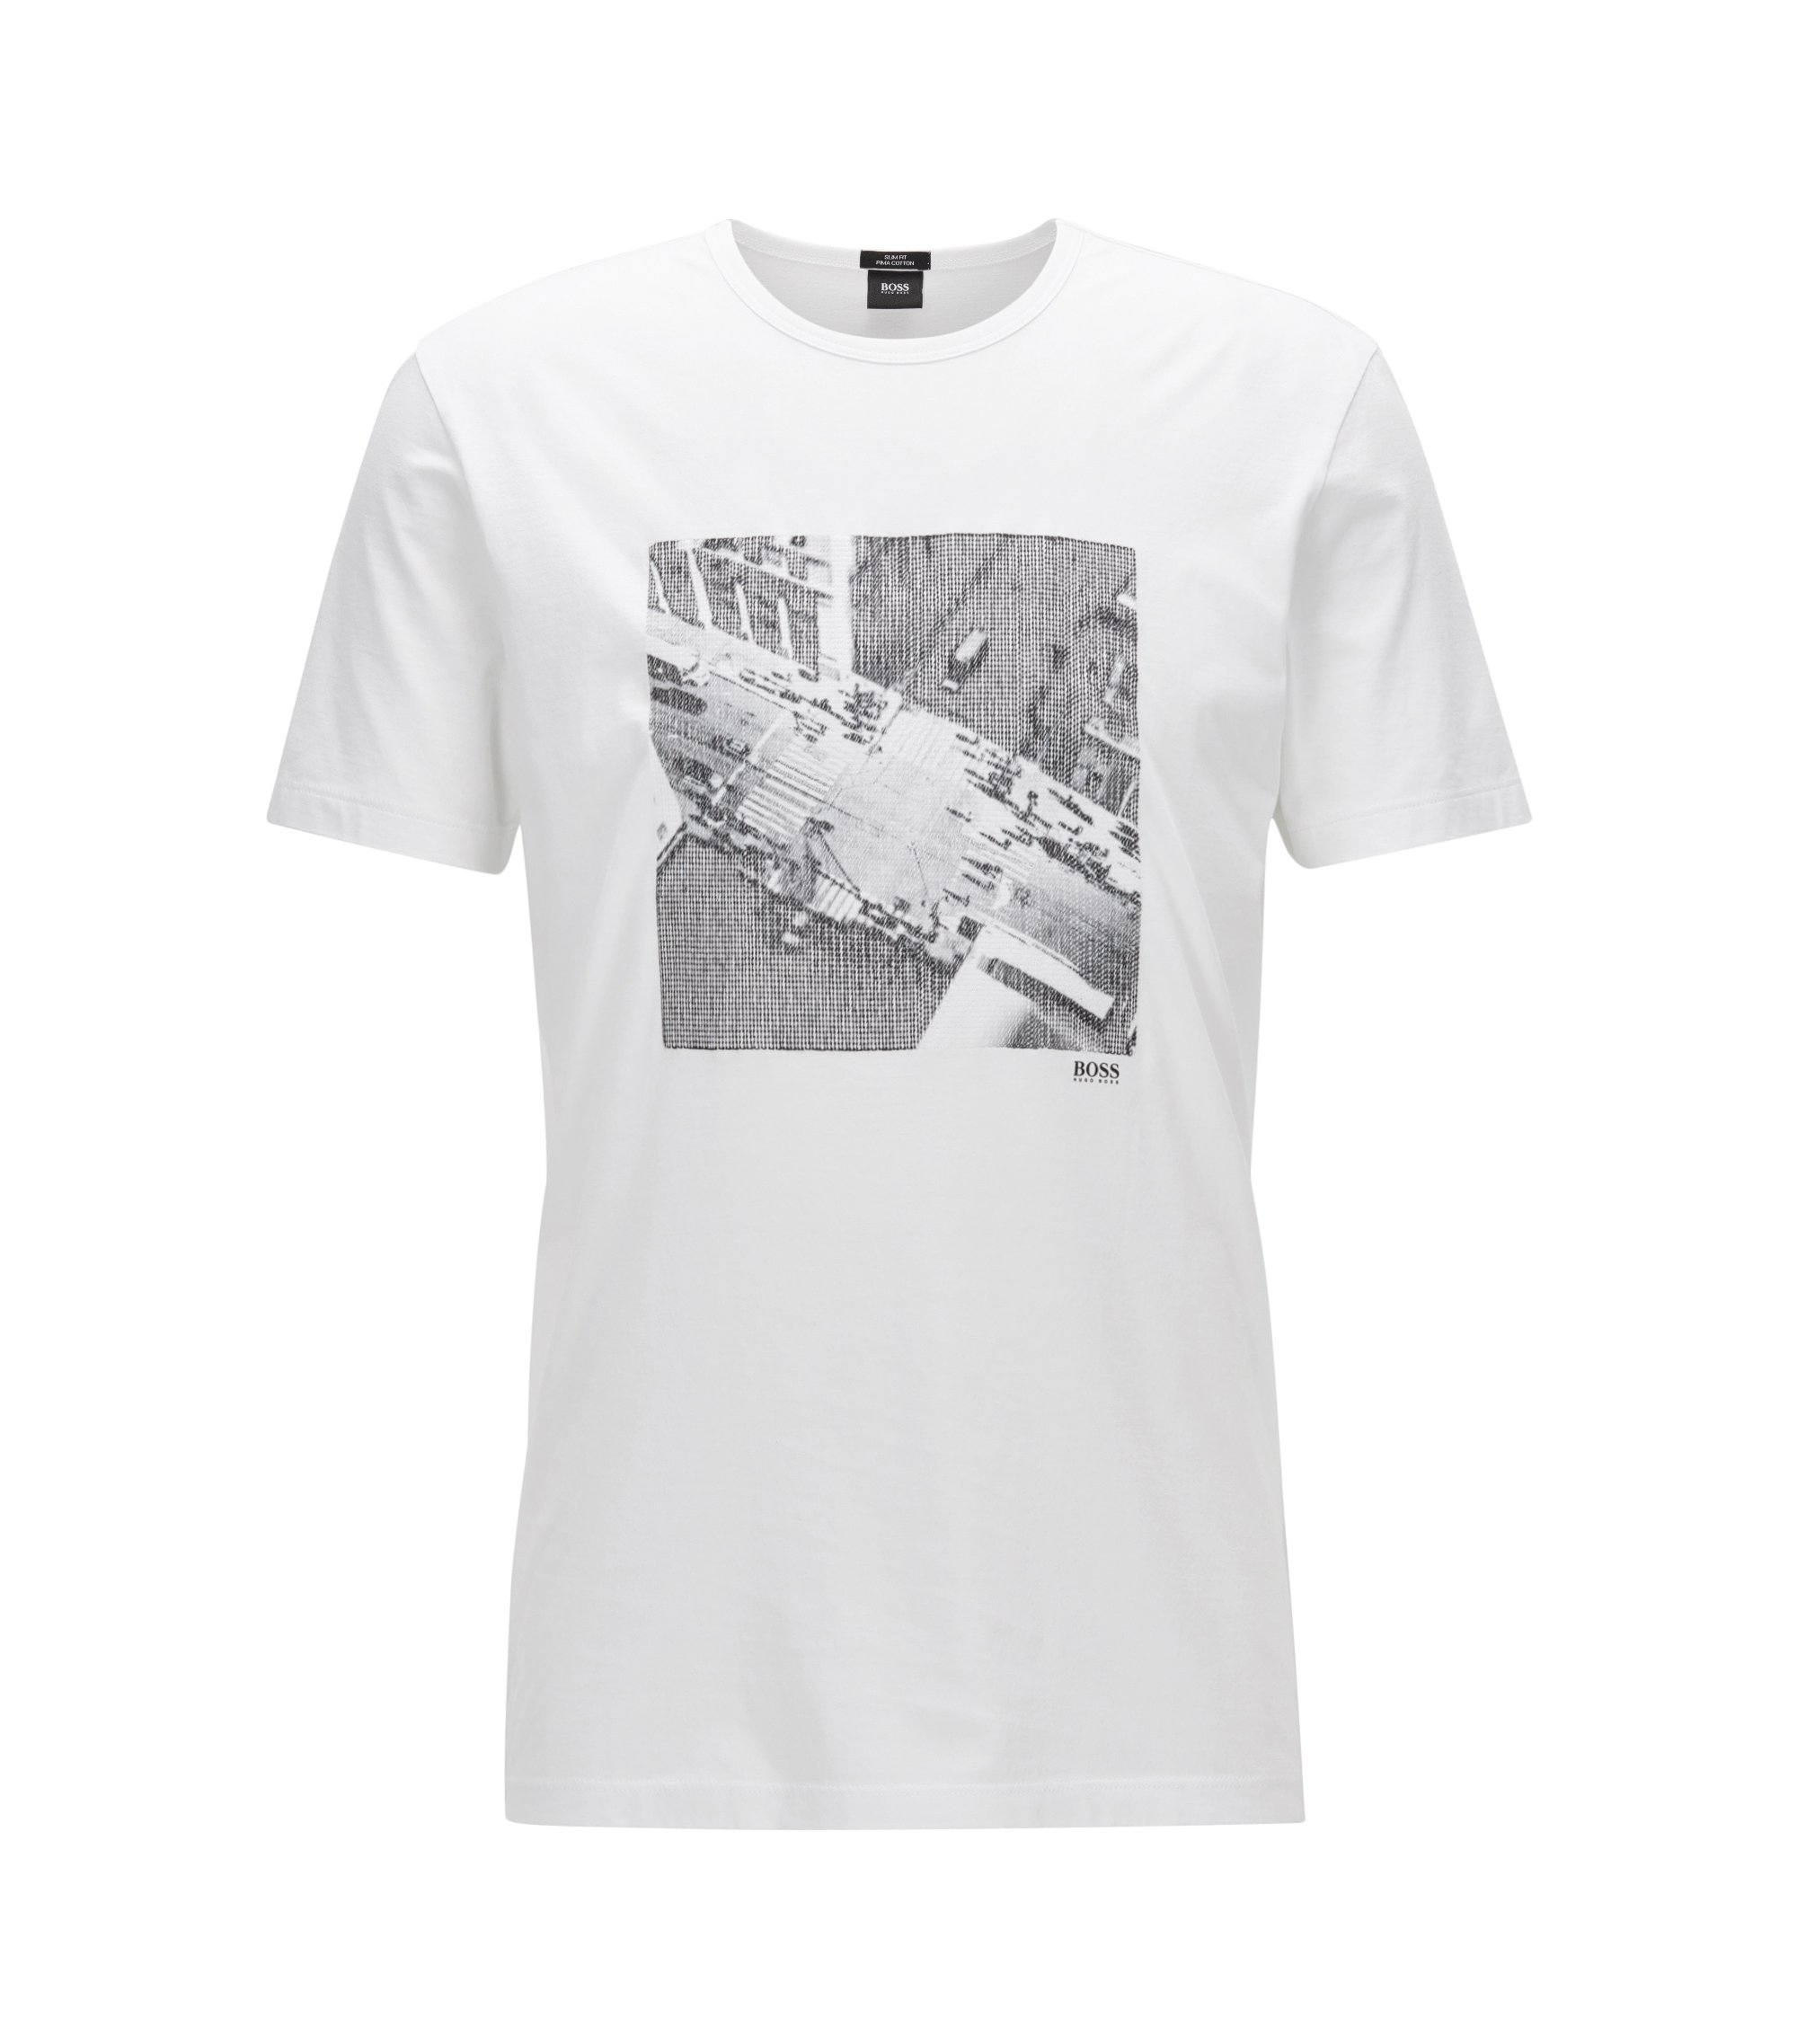 Slim-fit T-shirt van pimakatoen met NYC-print, Wit